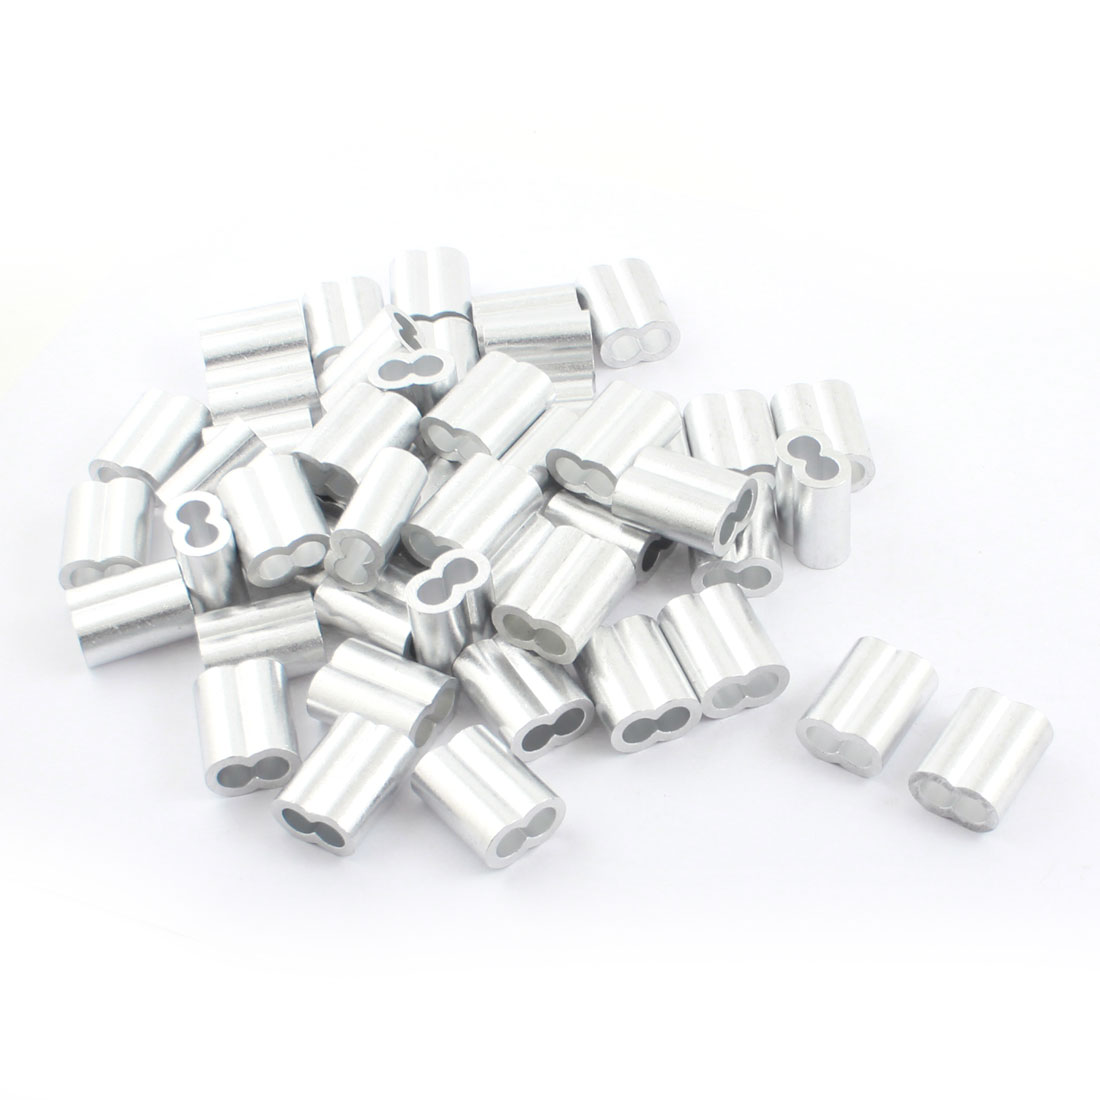 "50Pcs 3/8""x 1 1/8"" Aluminum Hourglass Ferrules Sleeve Crimp for 8mm Wire Rope"